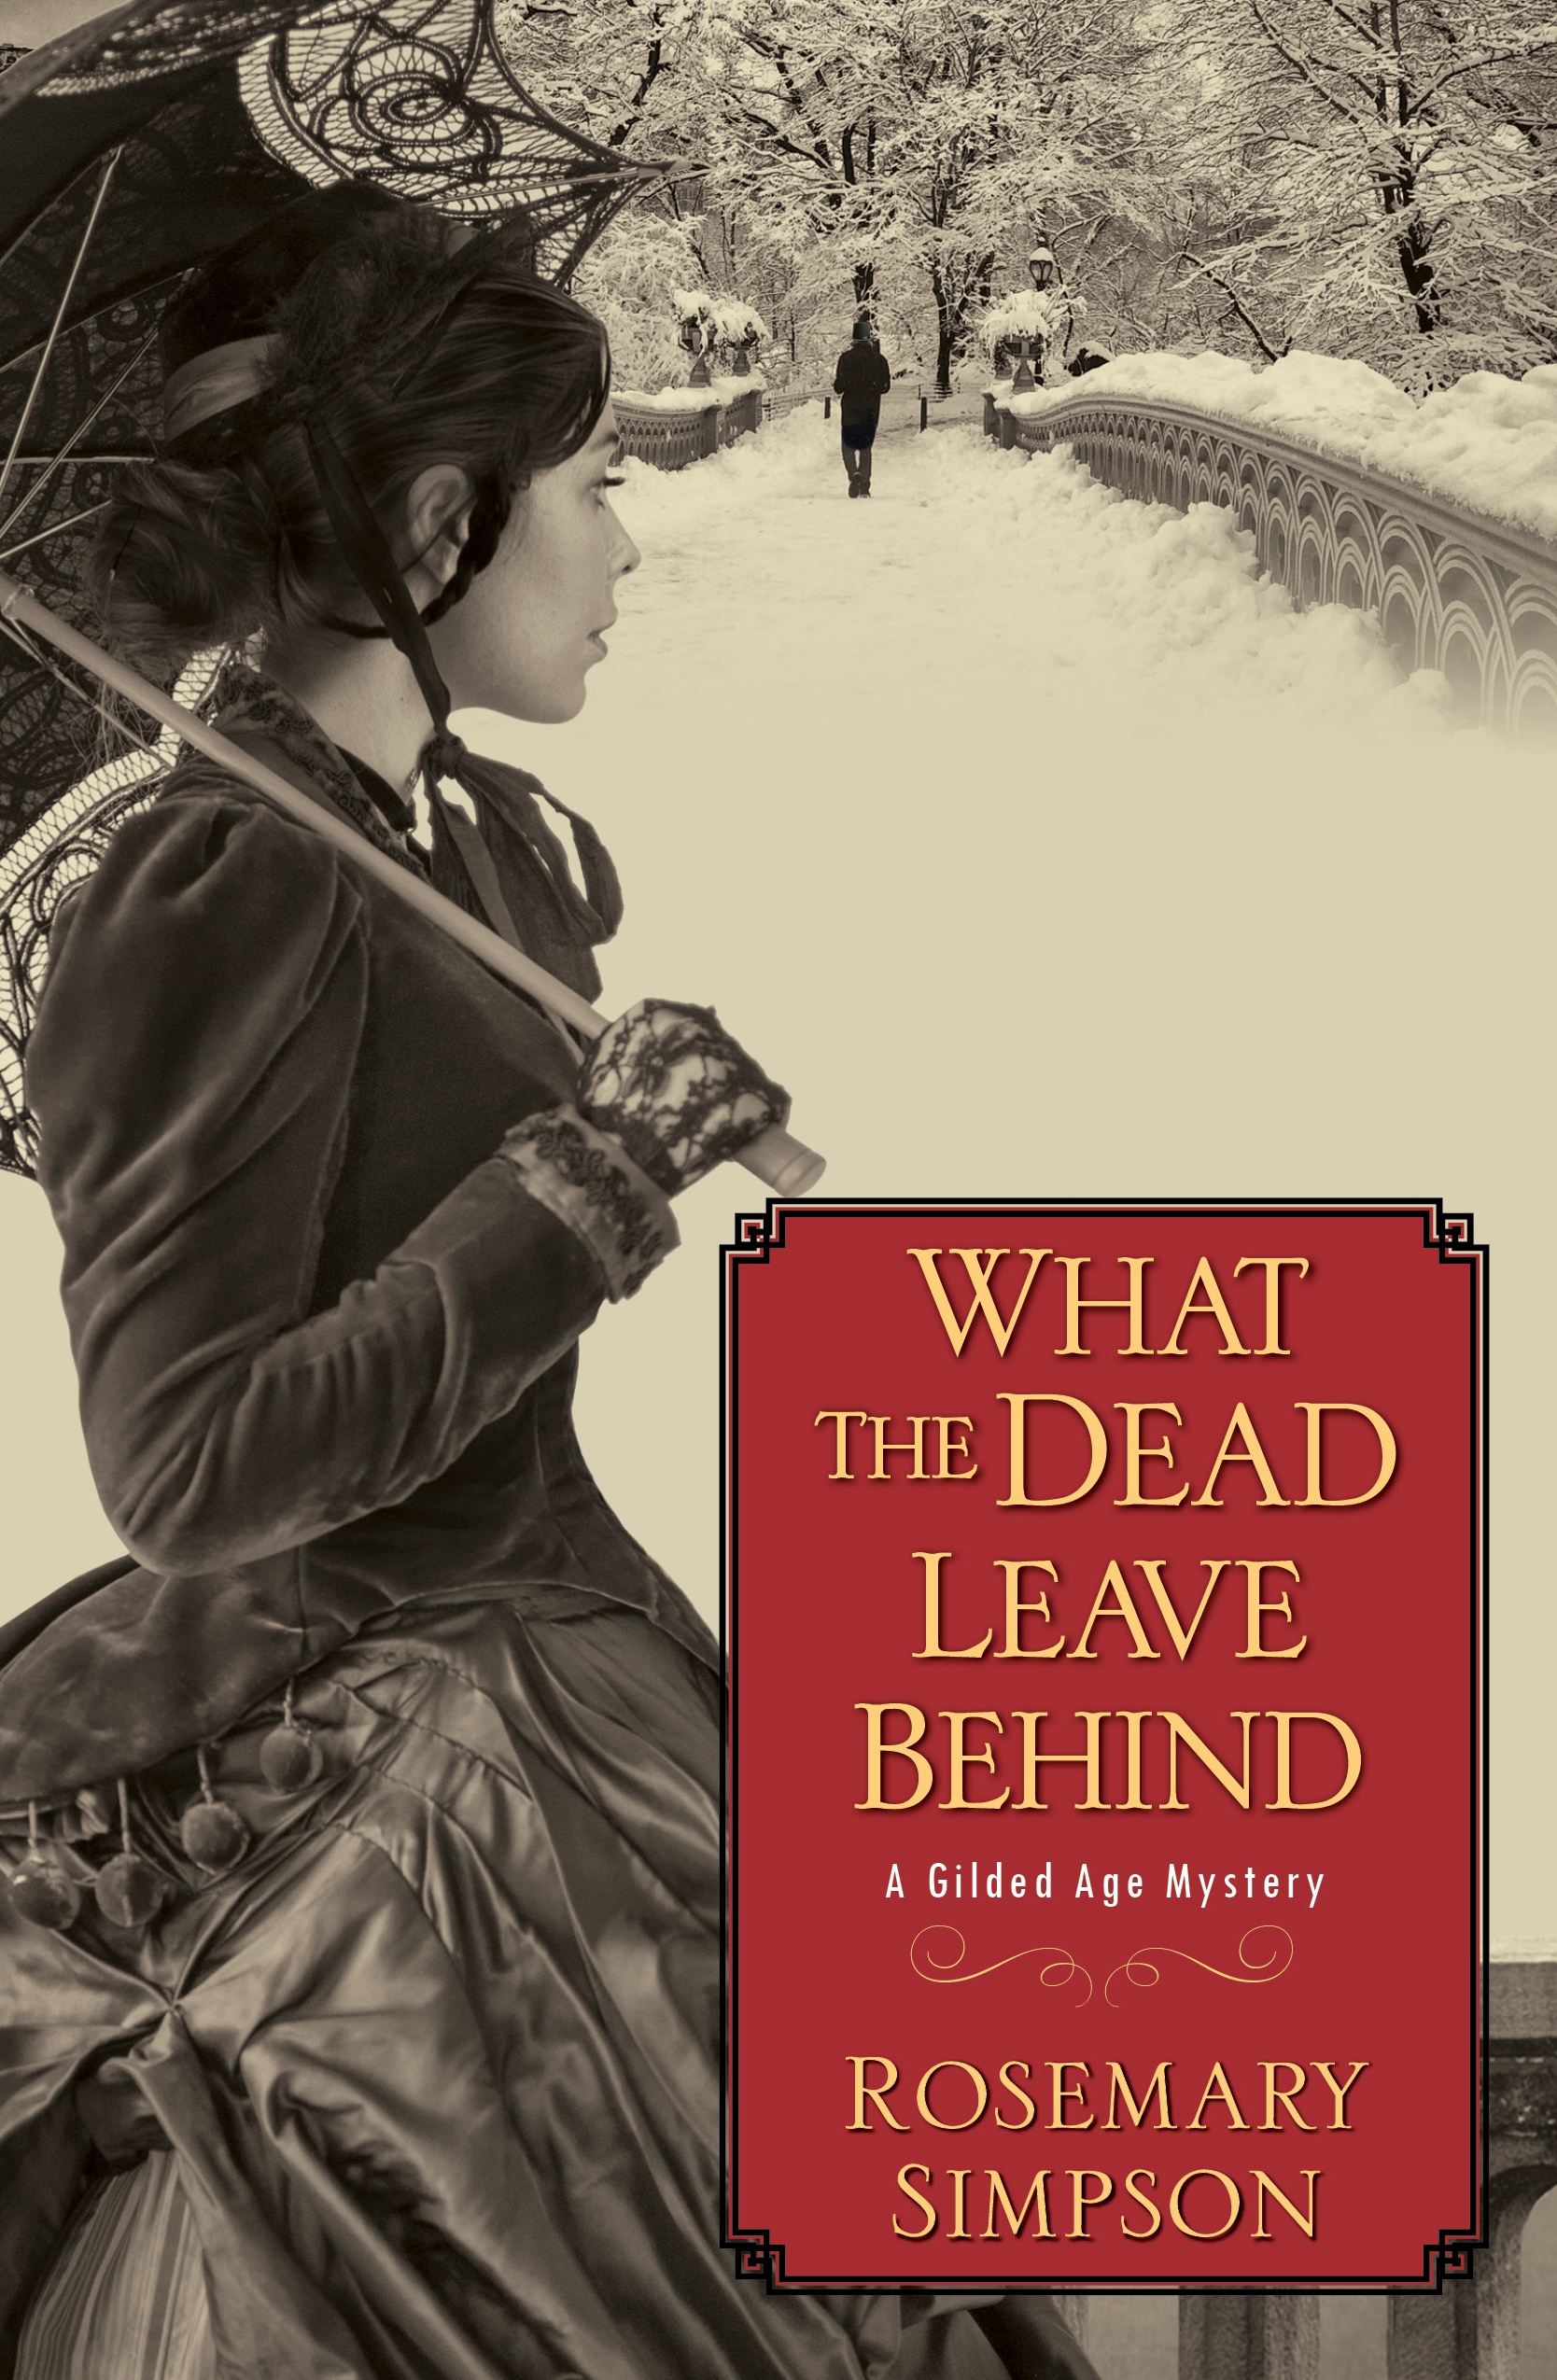 What The Dead Leave Behind by Rosemary Simpson